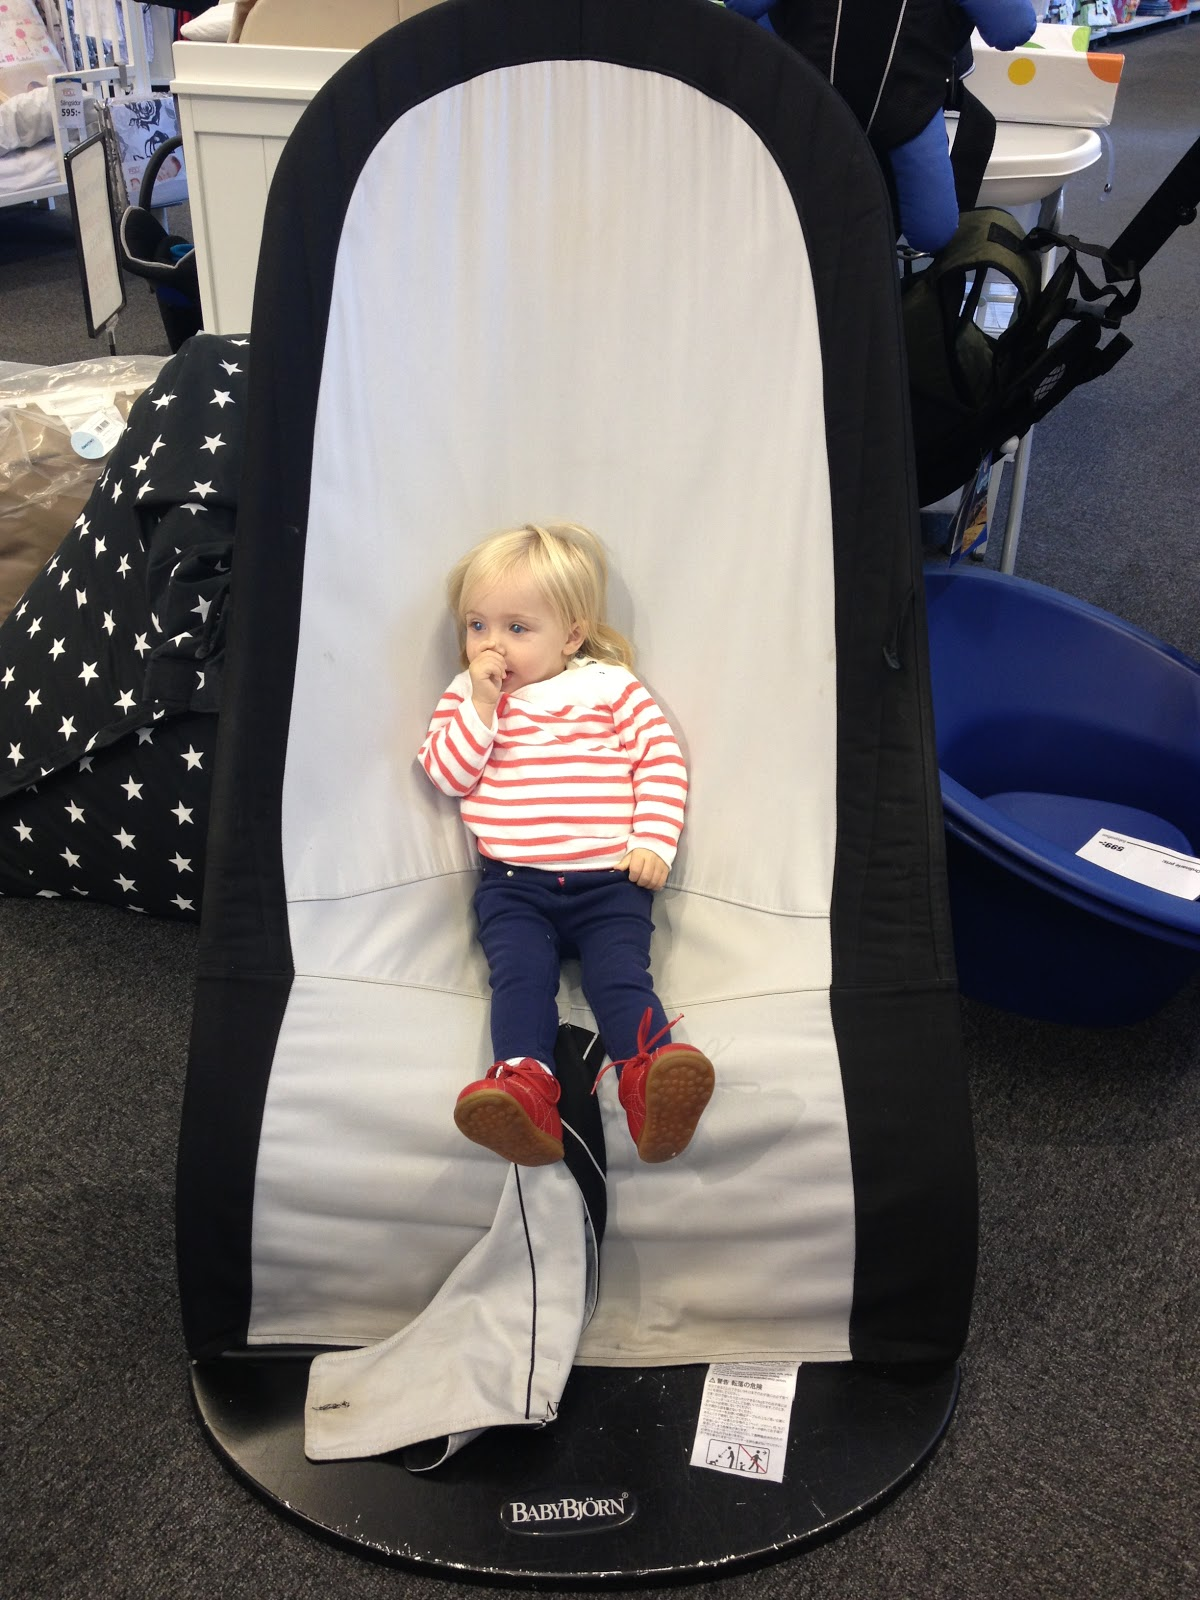 Anna Fair and True: Isolde at 19-20 Months